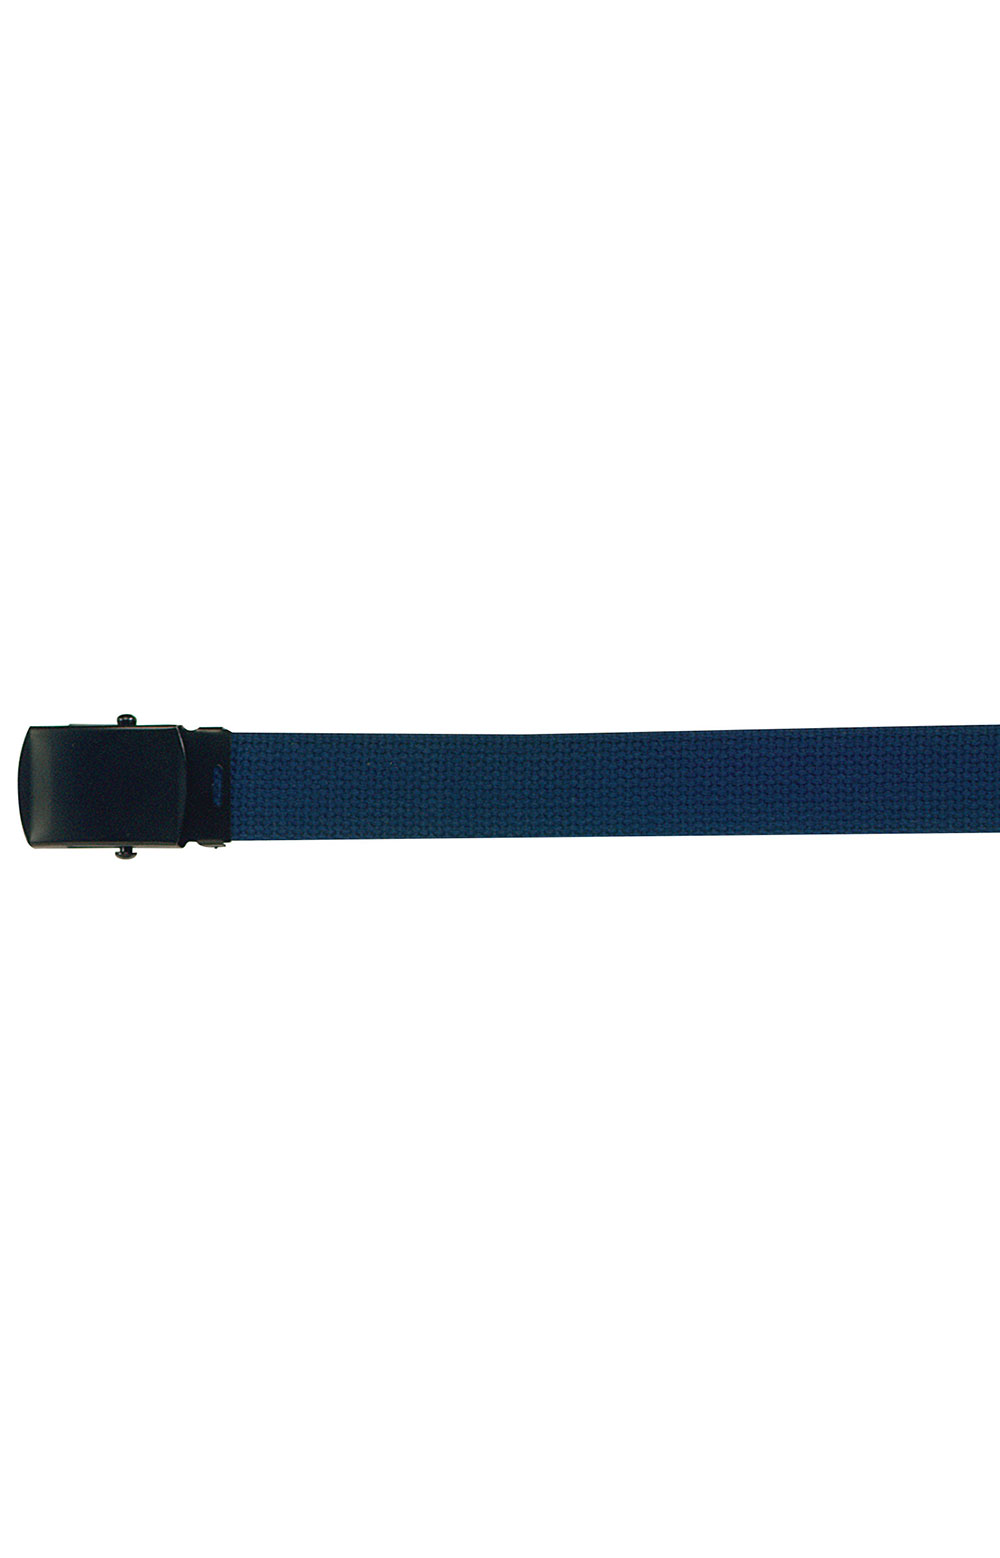 (4294) Military Web Belt With Black Buckle - Navy